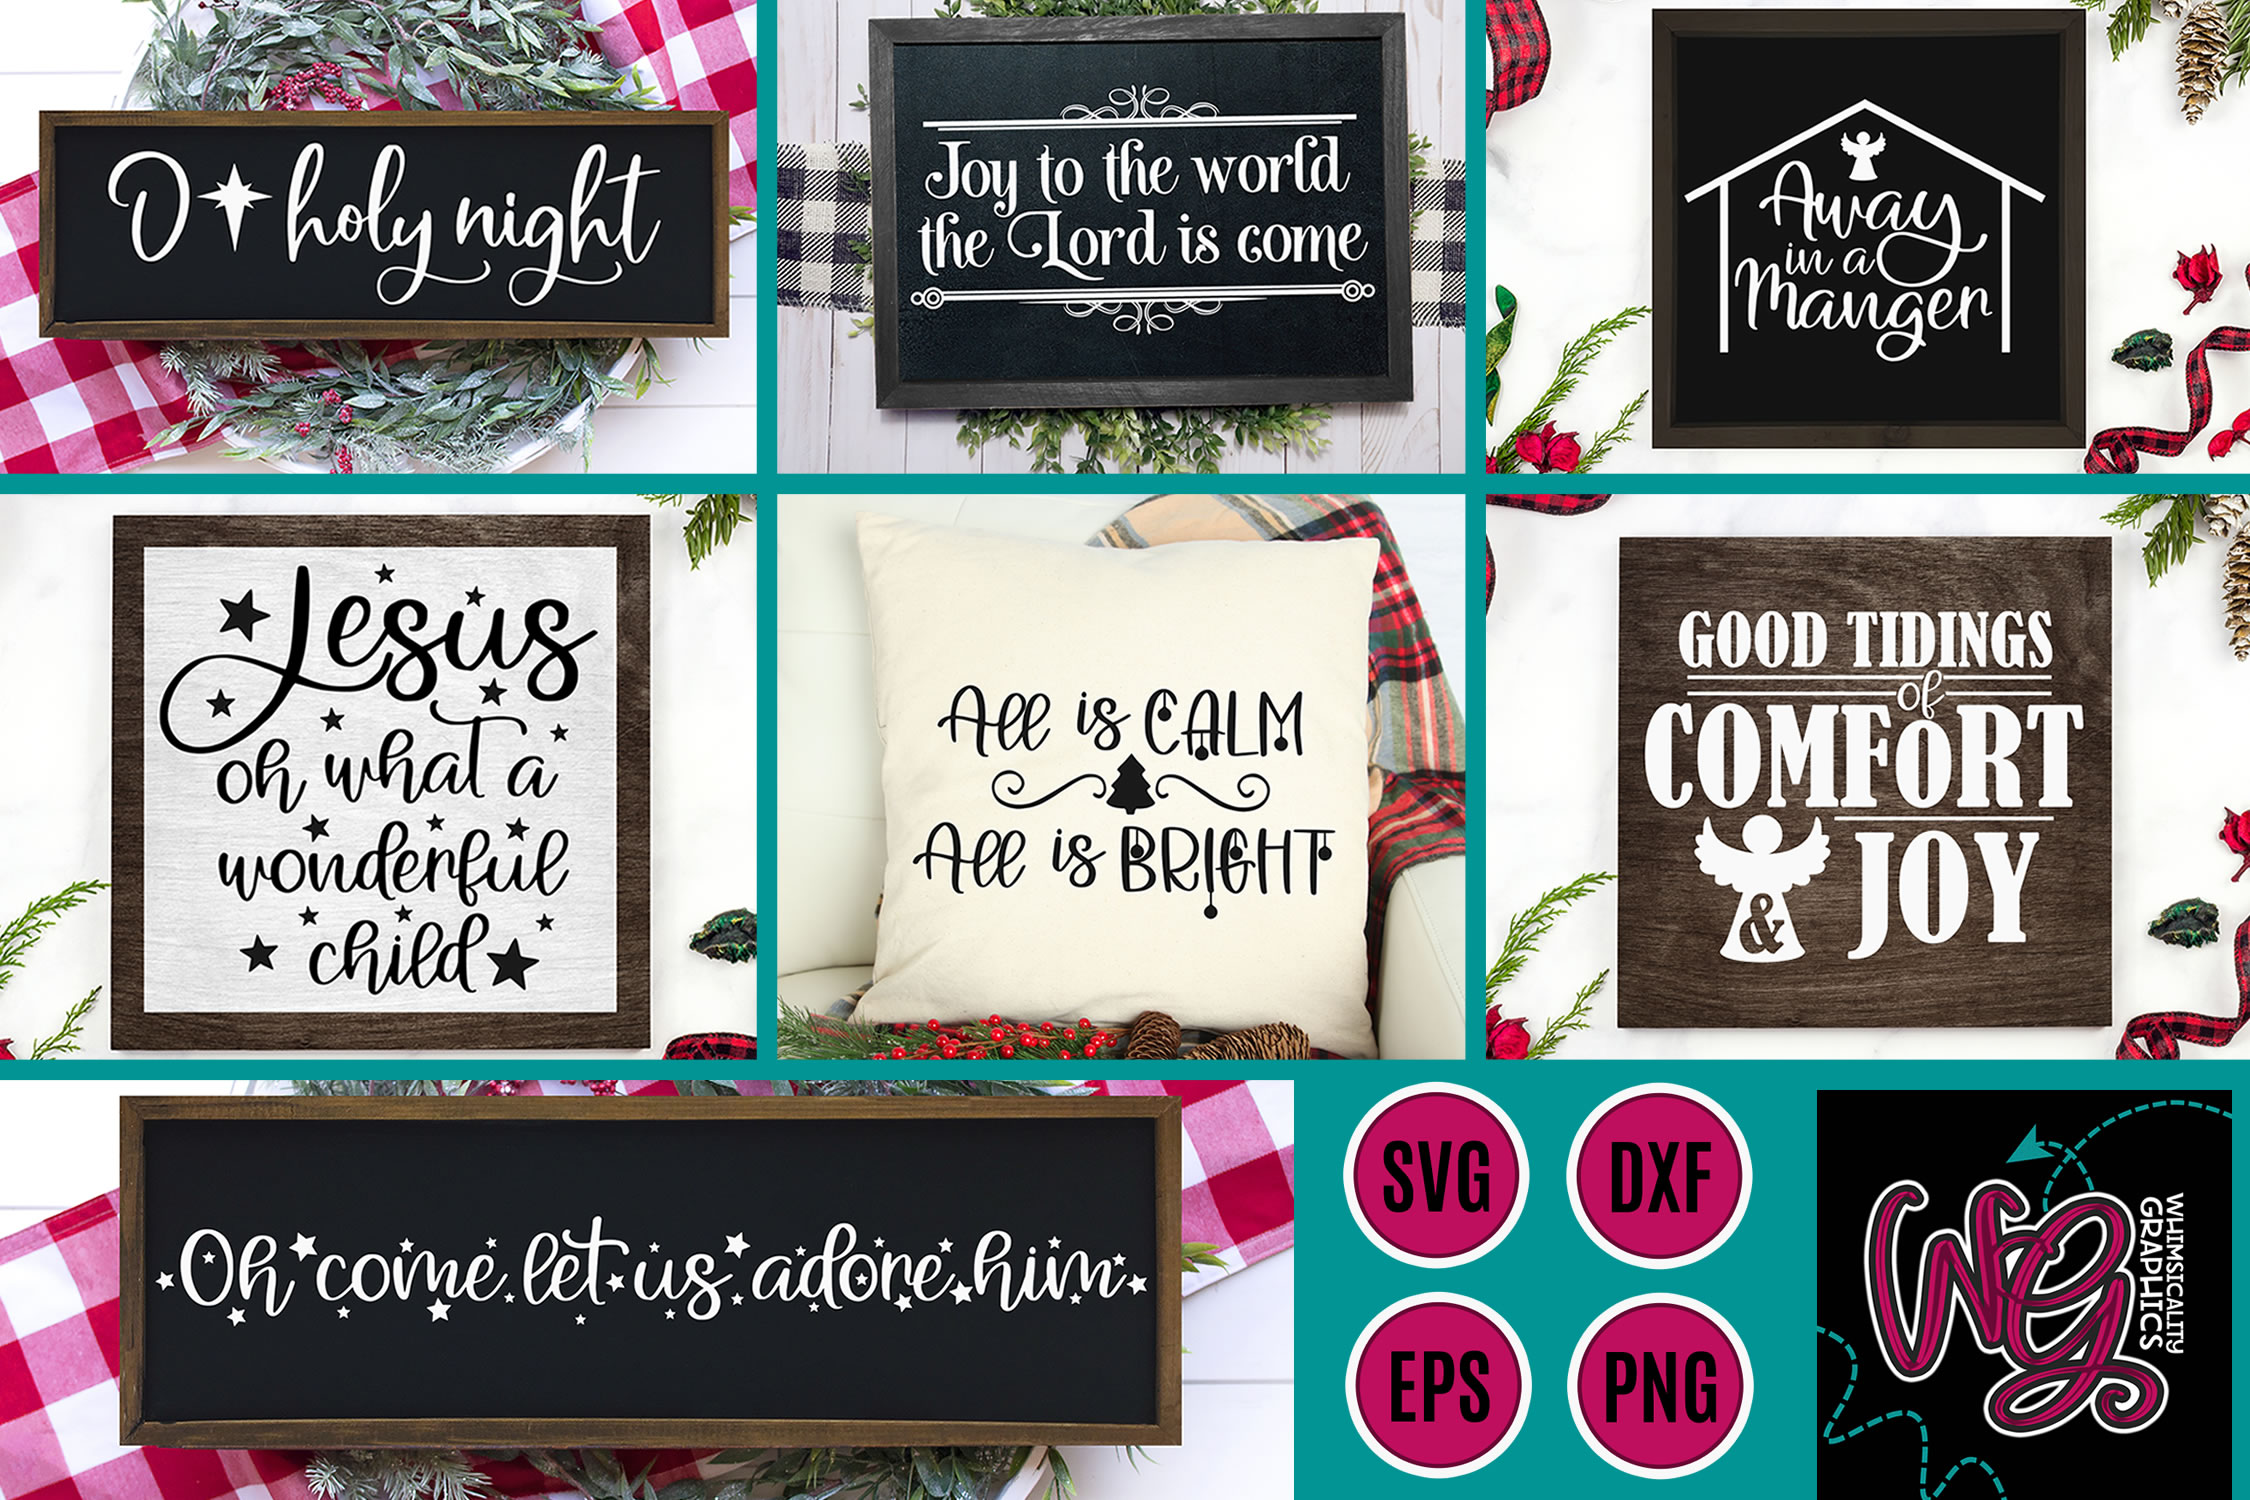 Christmas Hymns Bundle SVG, DXF, PNG, EPS example image 1